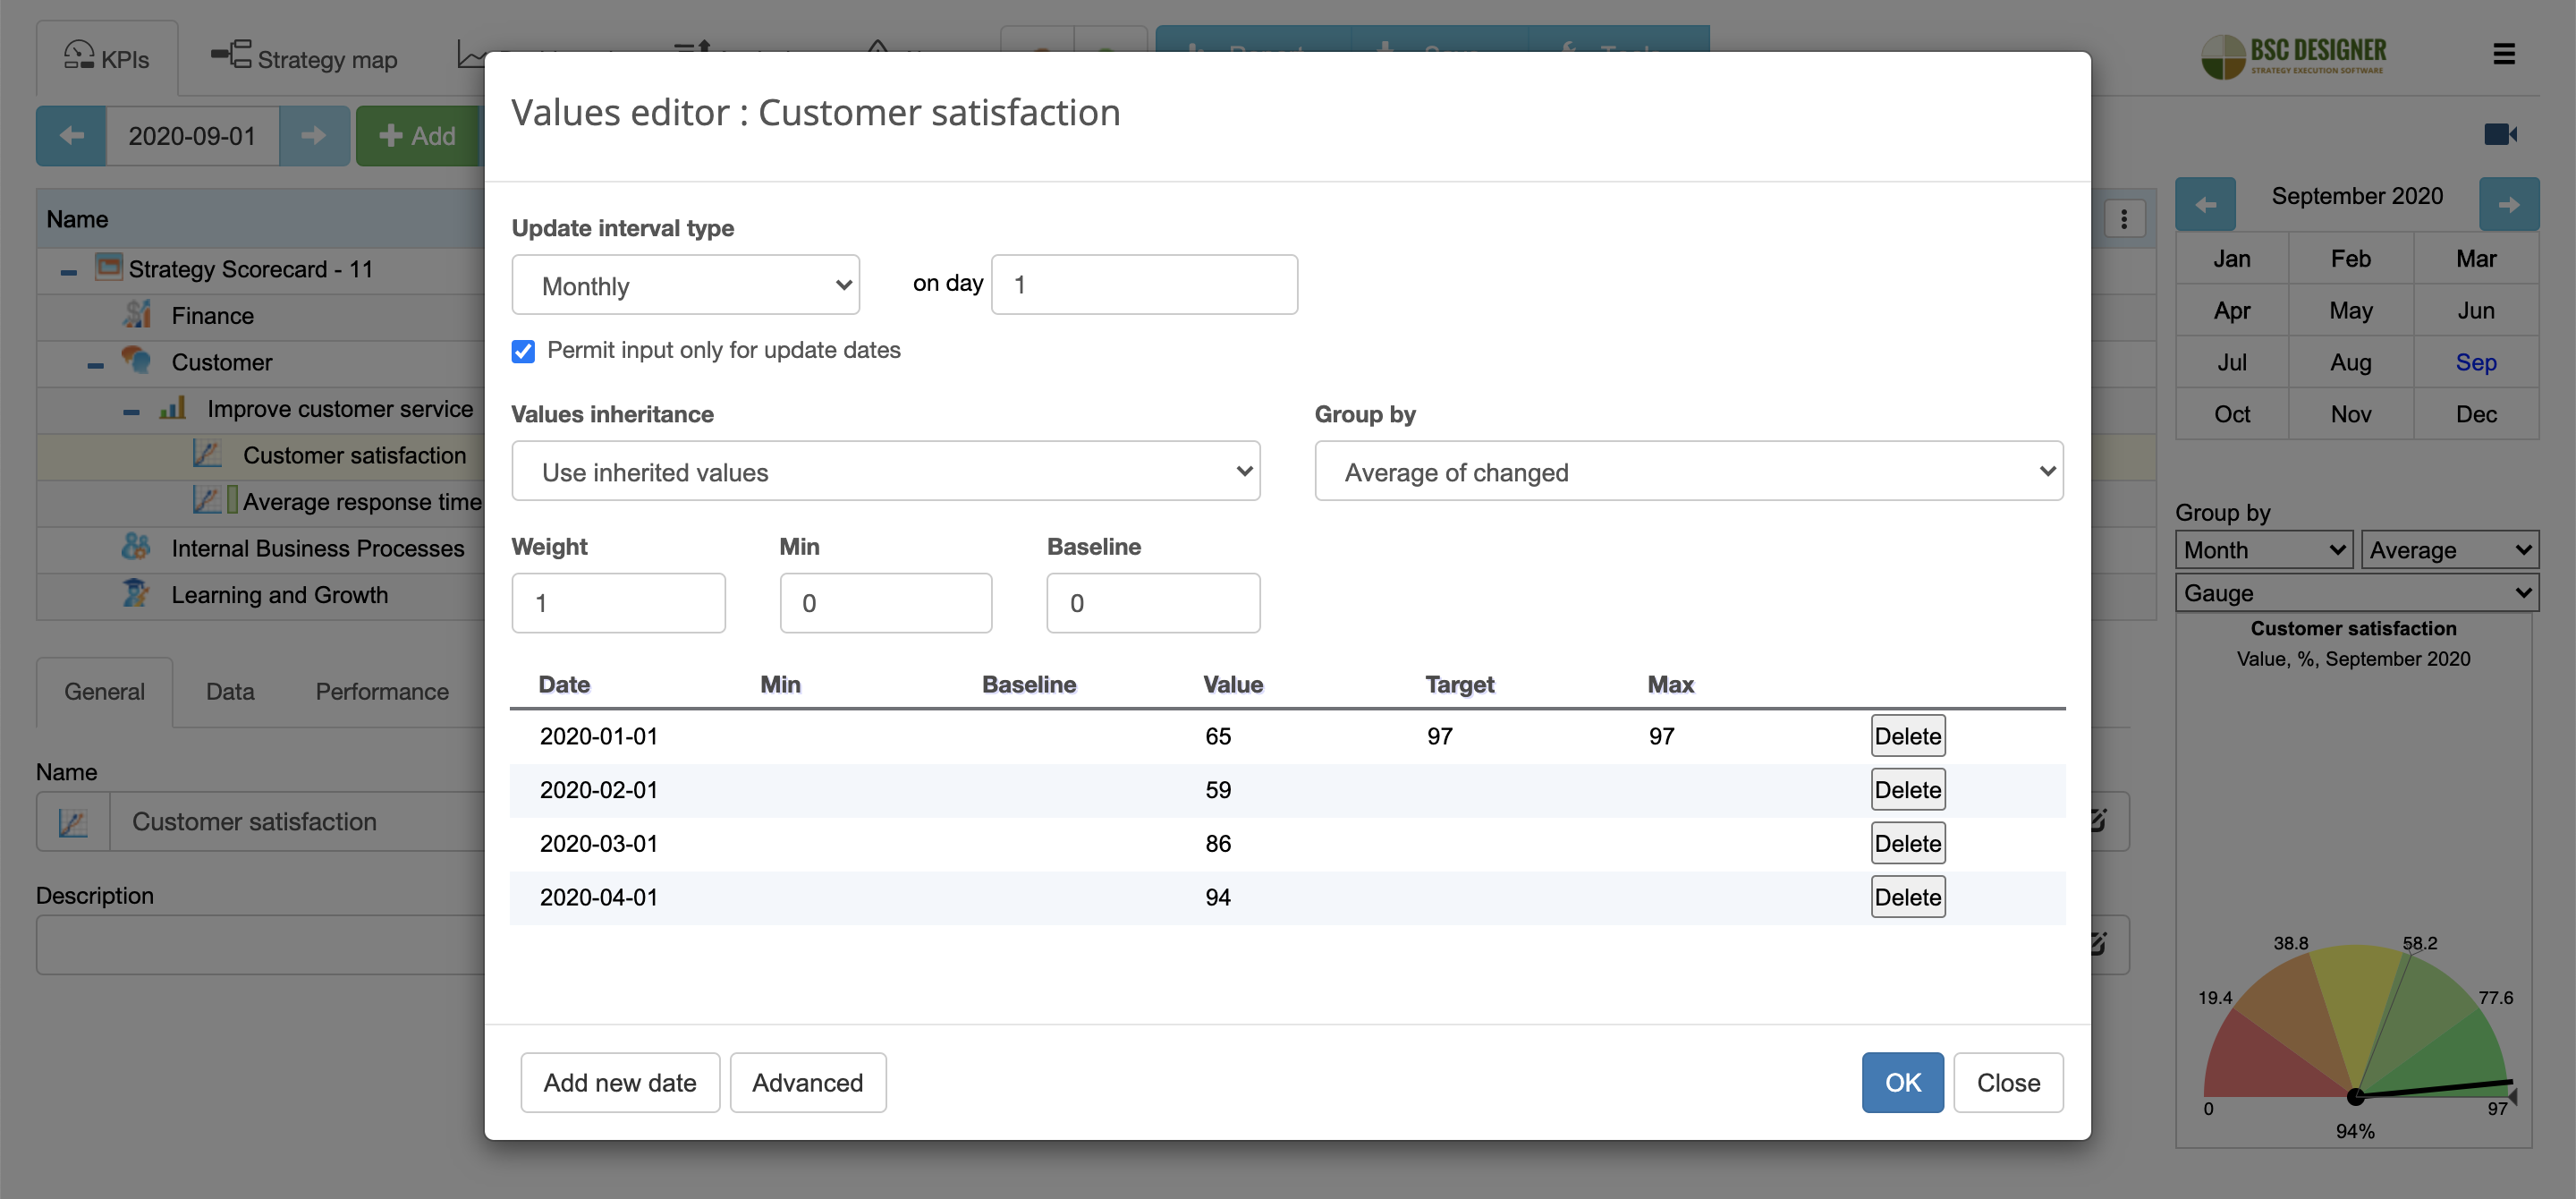 Control KPI update interval and grouping setting